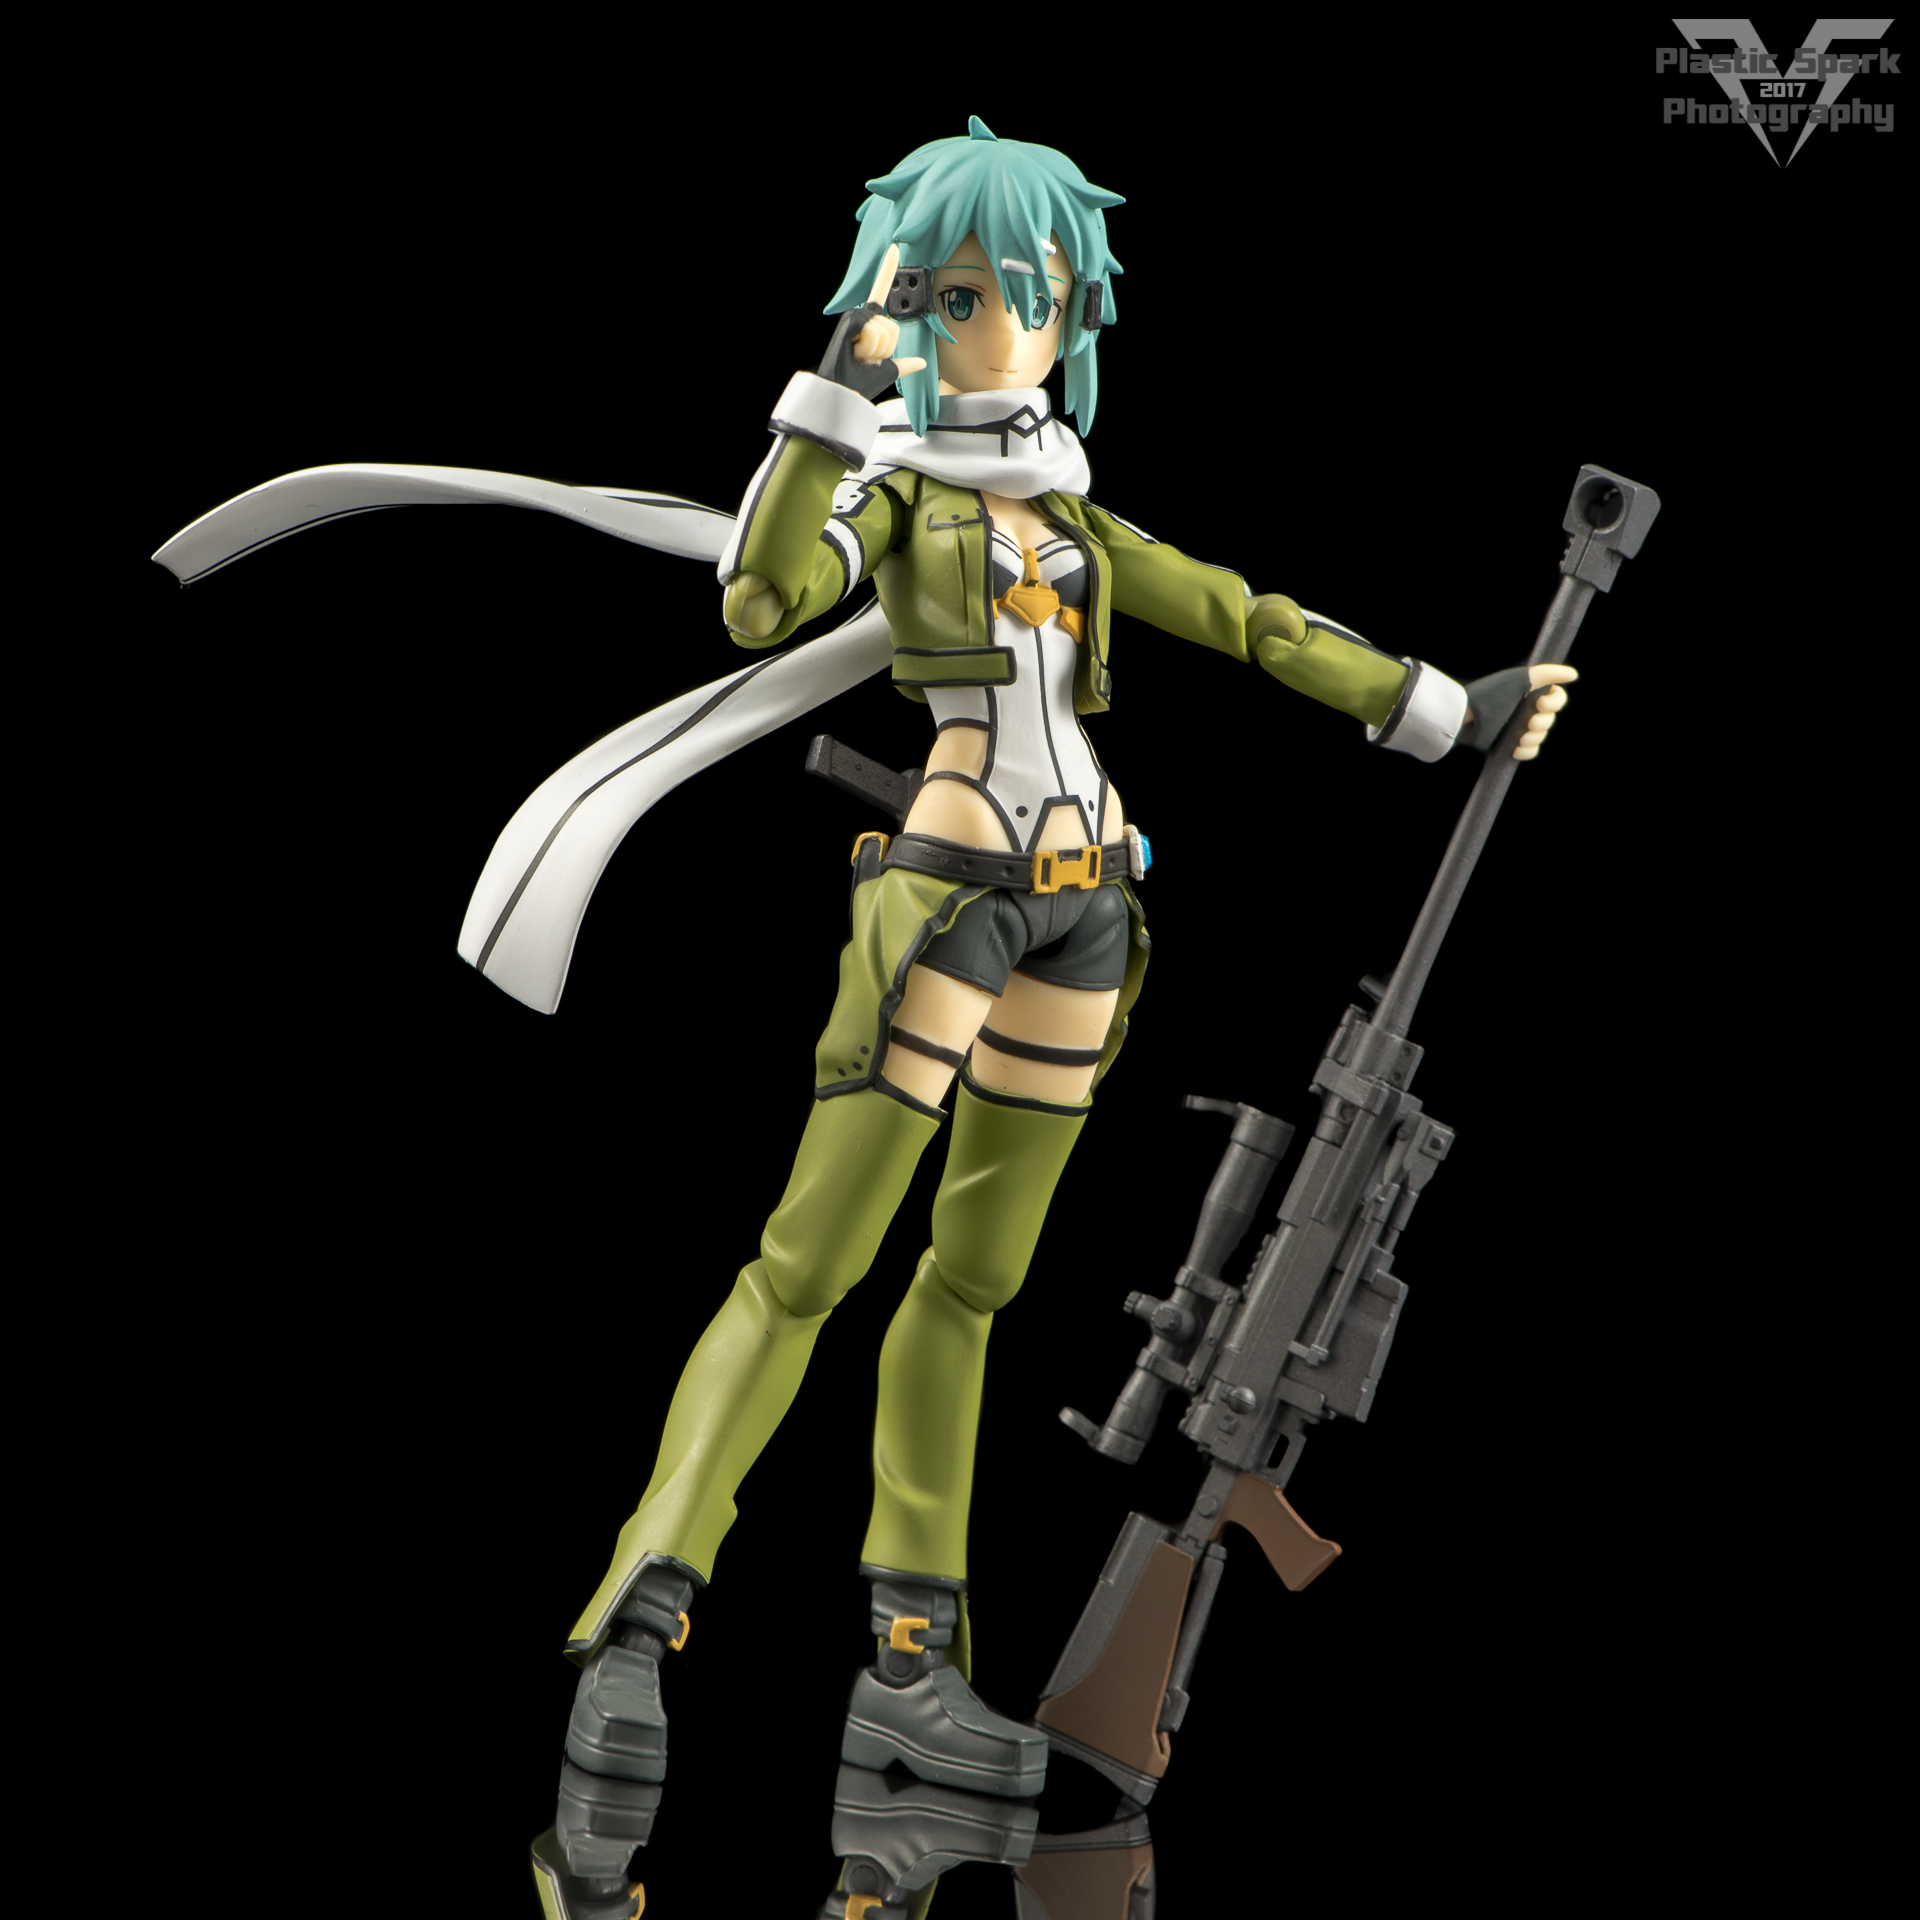 Figma-Sinon-(16-of-27).png